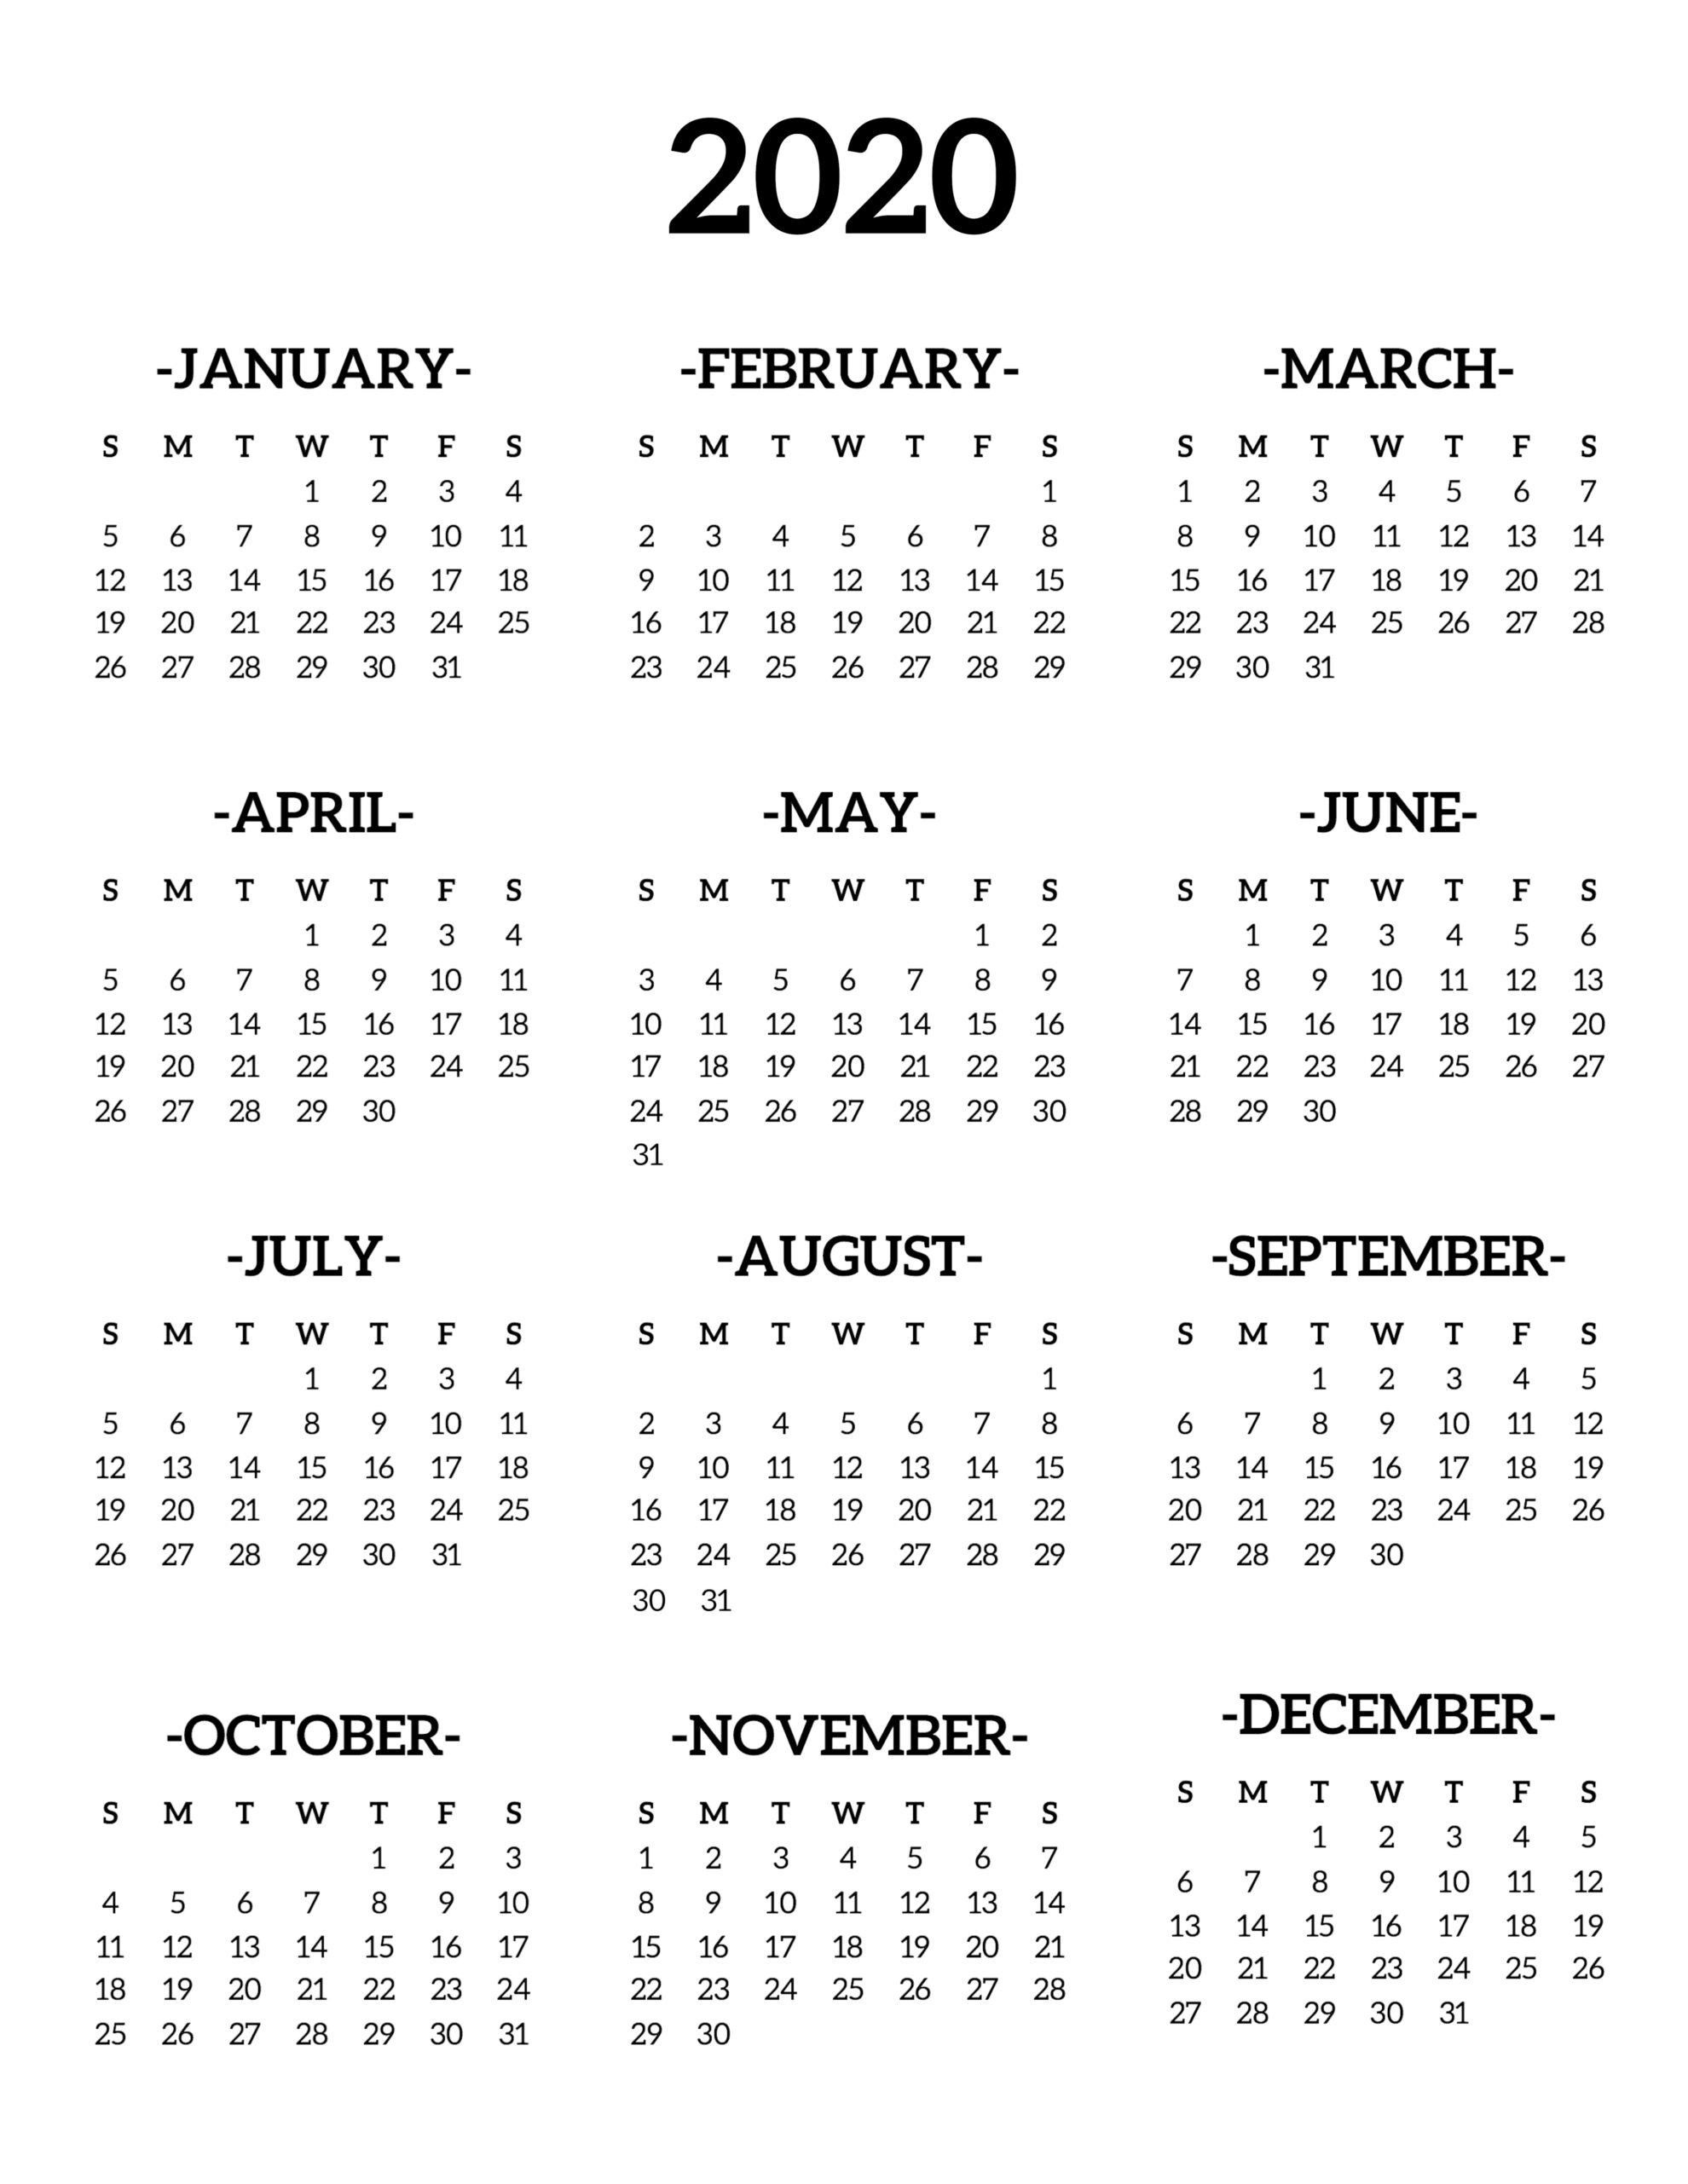 2020 Calendar Printable One Page | Calendario, Bullet intended for Free Printable Year At A Glance 2020 Calendar